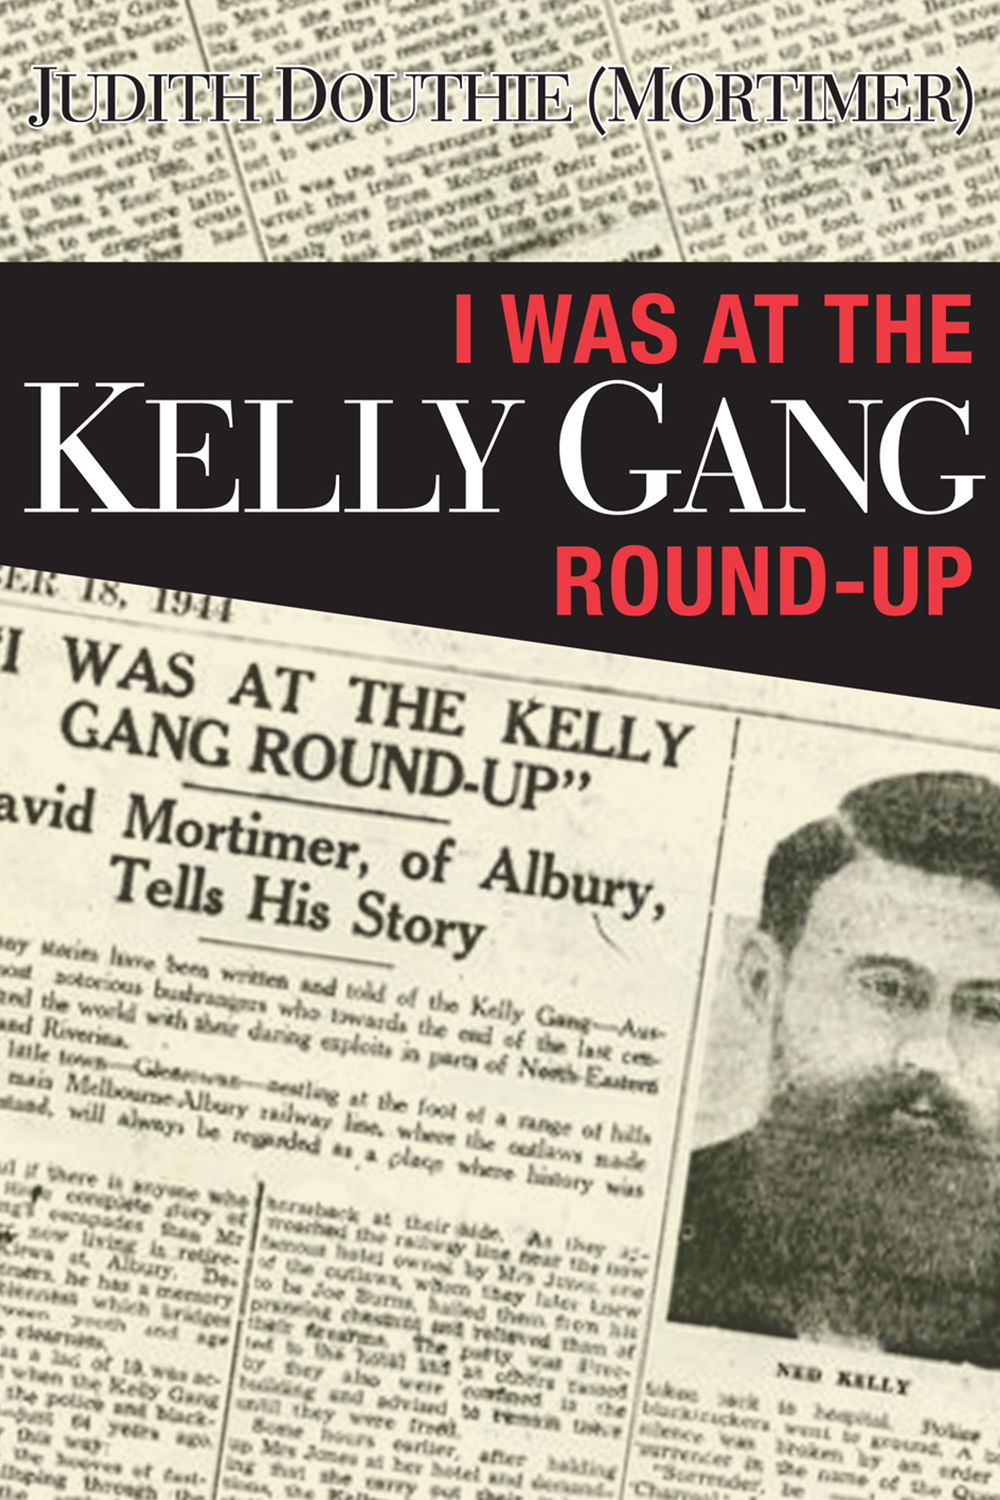 I was at the Kelly Gang Round-up by Judith Douthie